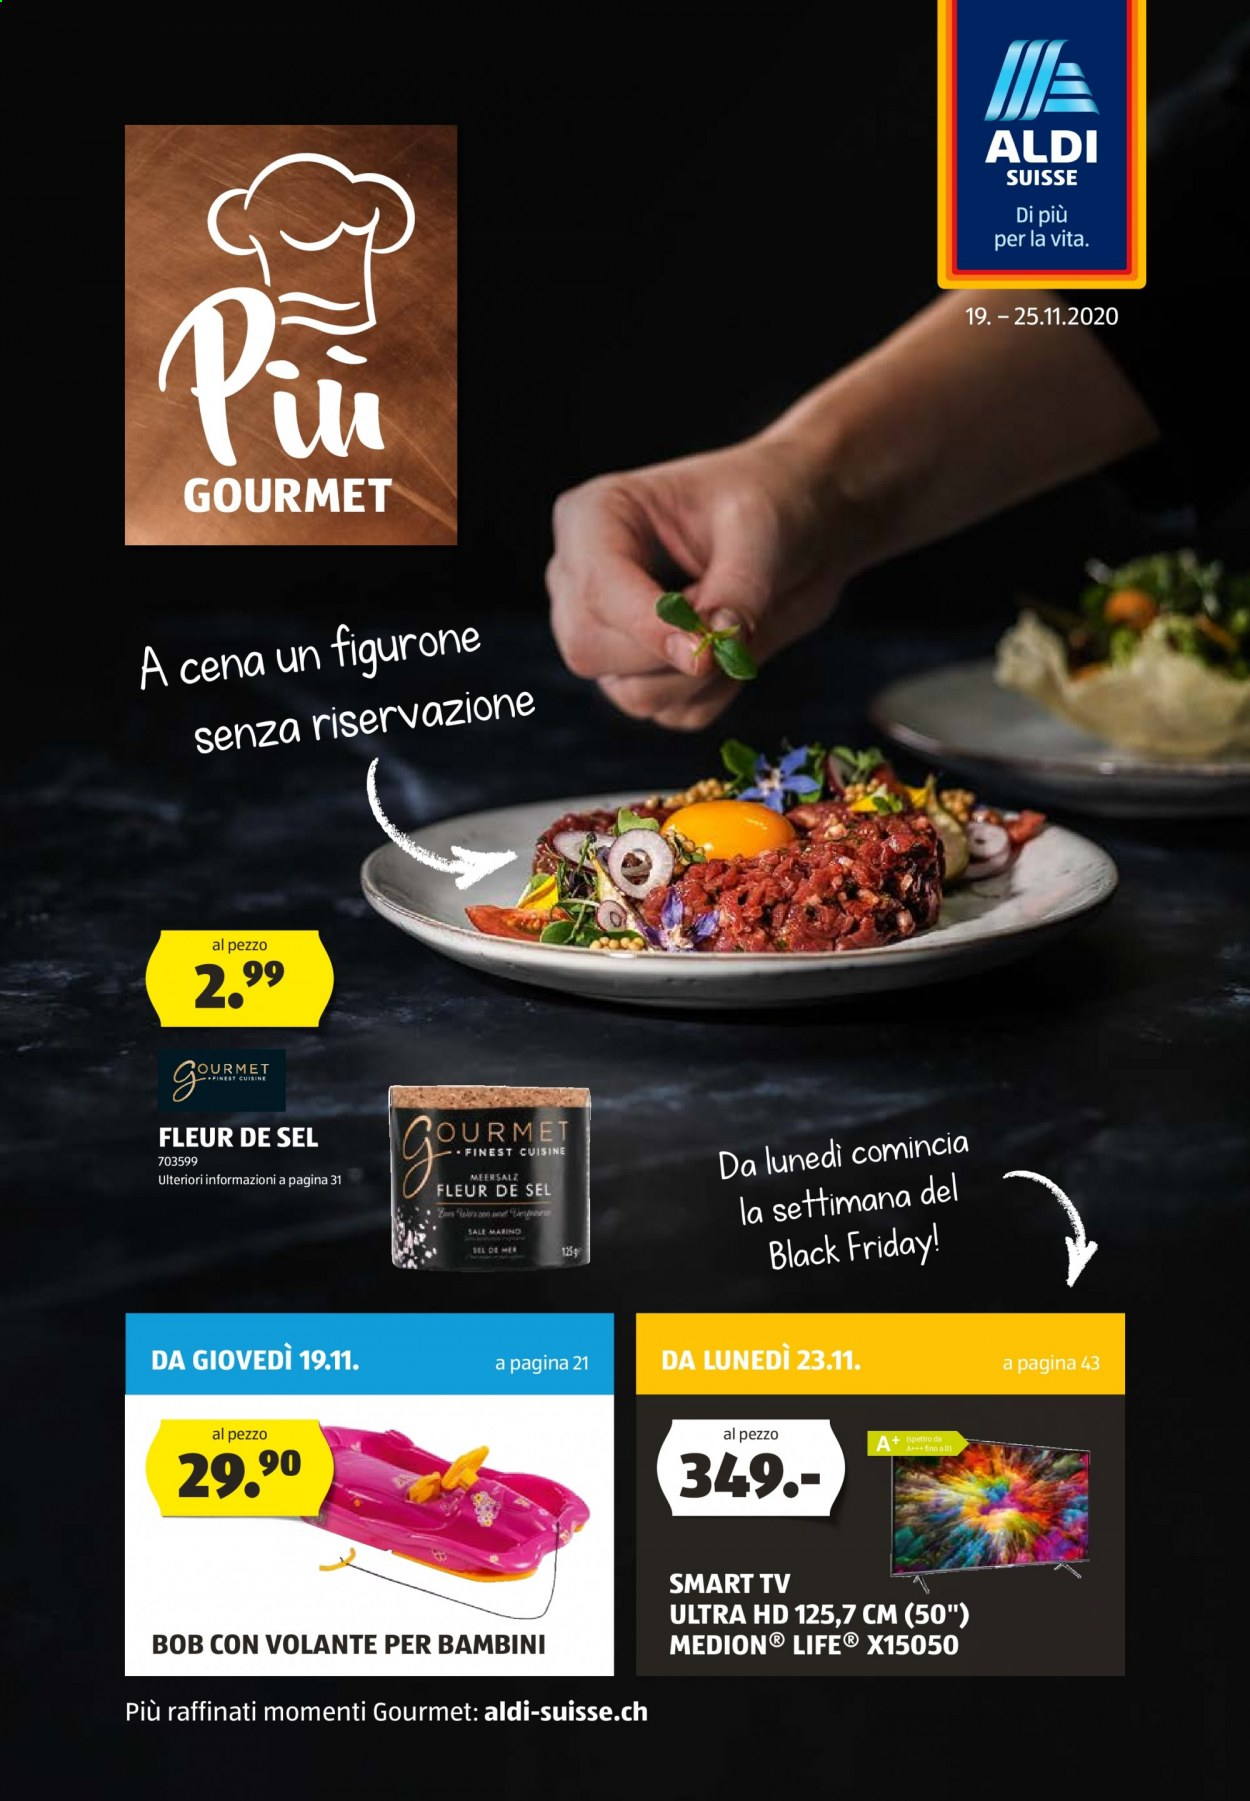 Prospekte Aldi - 19.11.2020 - 25.11.2020 - Produkte in Aktion - tv, meersalz, smart tv, ultra hd, fleur, sel, sale, gourmet, sale marino. Seite 1.